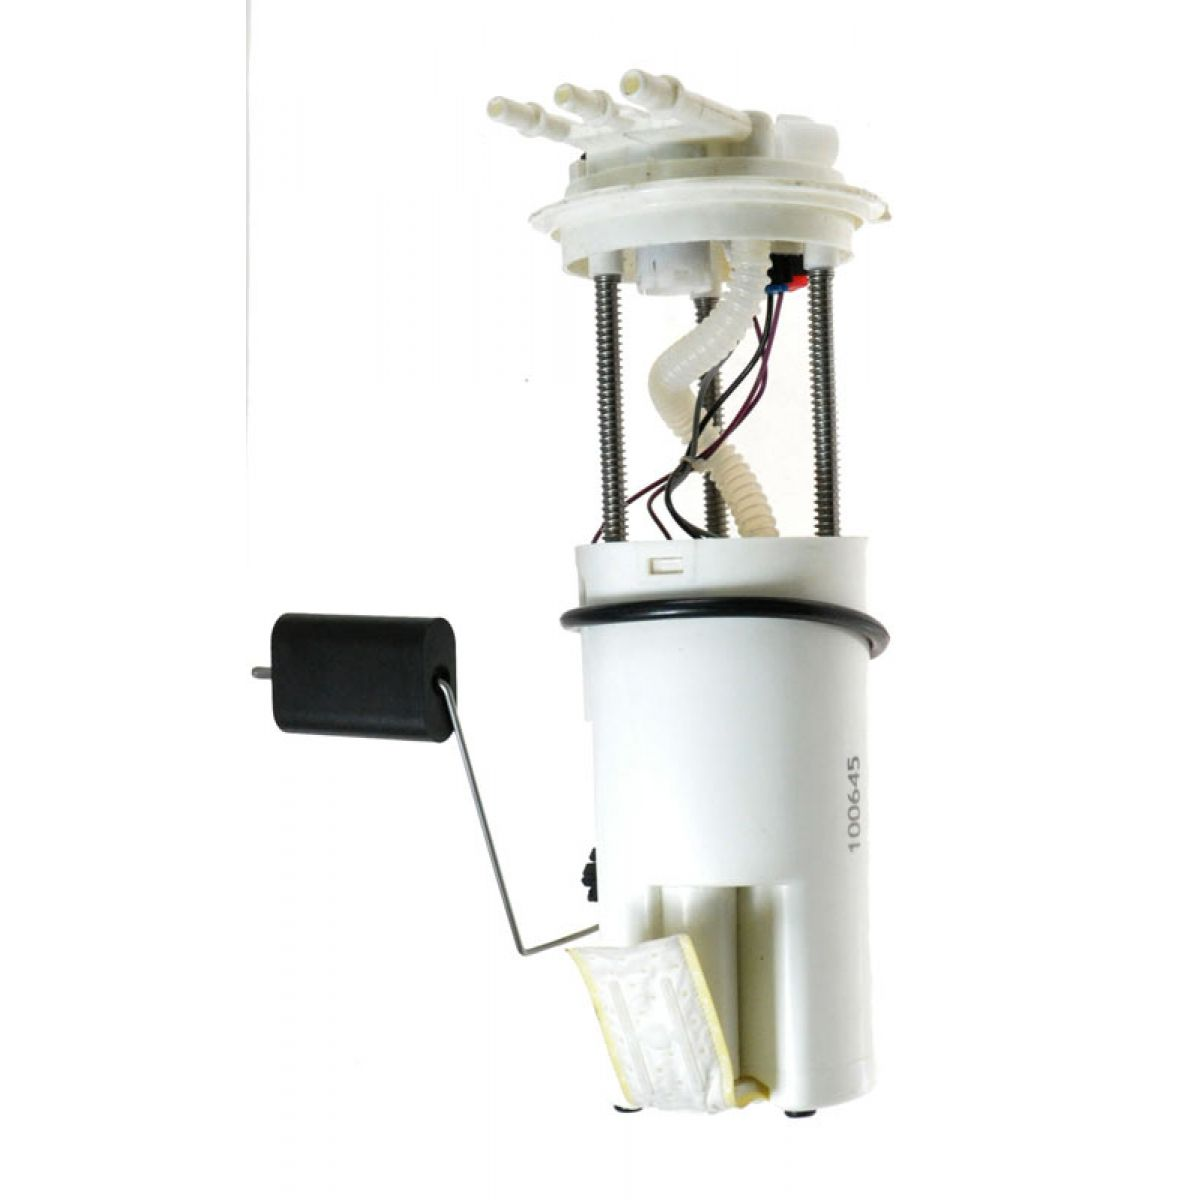 AM-912076981556  Buick Regal Fuel Pump Wiring Diagram on